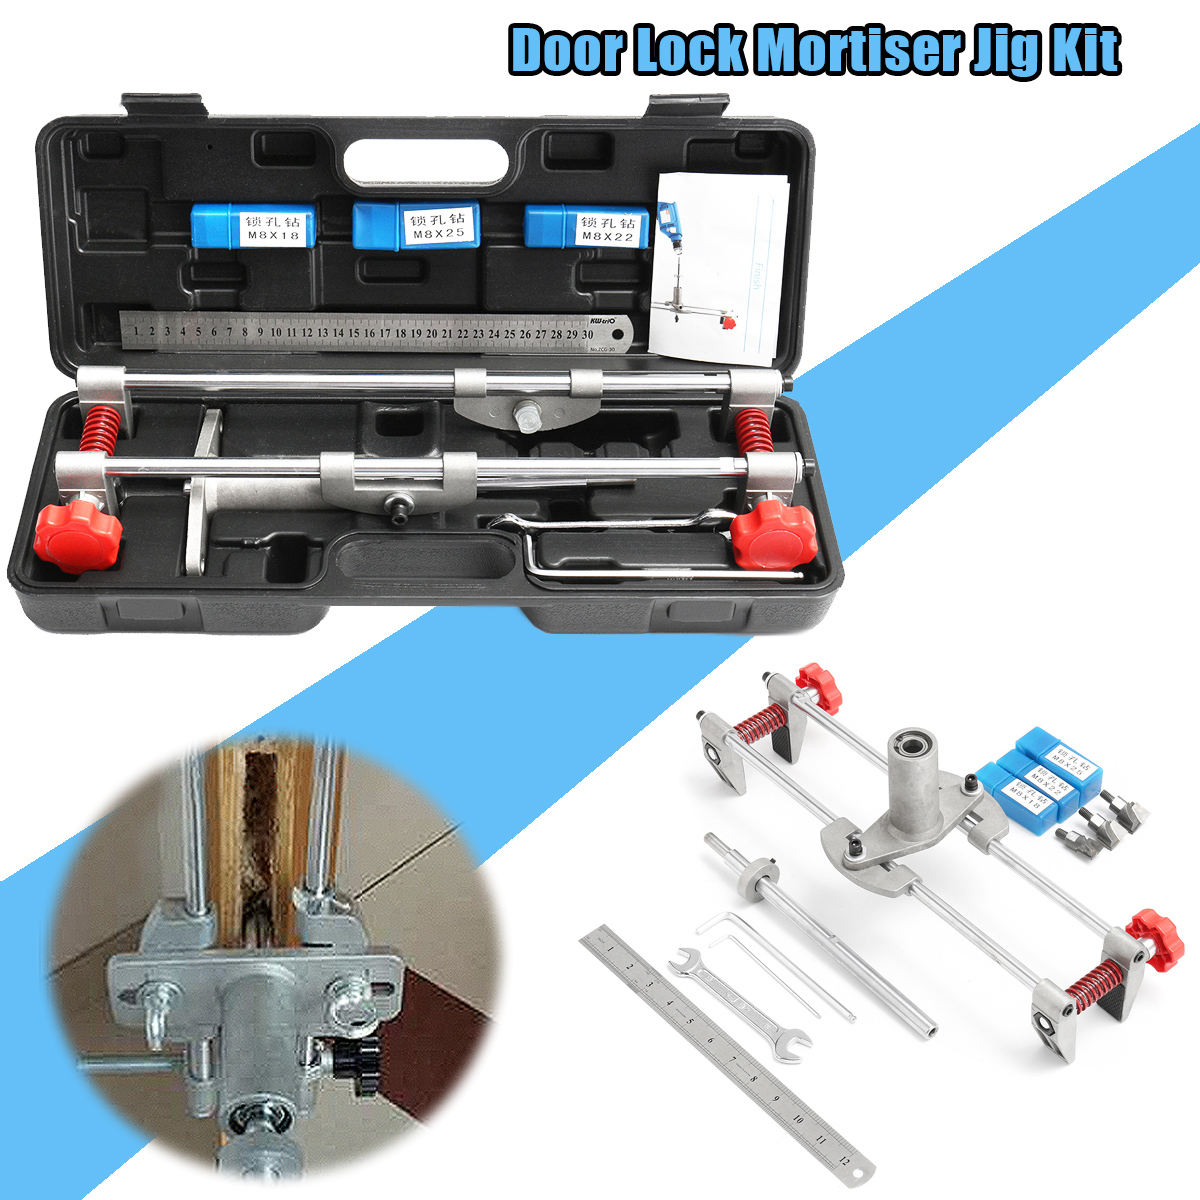 8 Pcs Mortice Door Fitting Jig Lock Mortiser DBB Key JIG1 With 3 Cutters Case Maintenance Security Tool Door Lock Mortice Kit